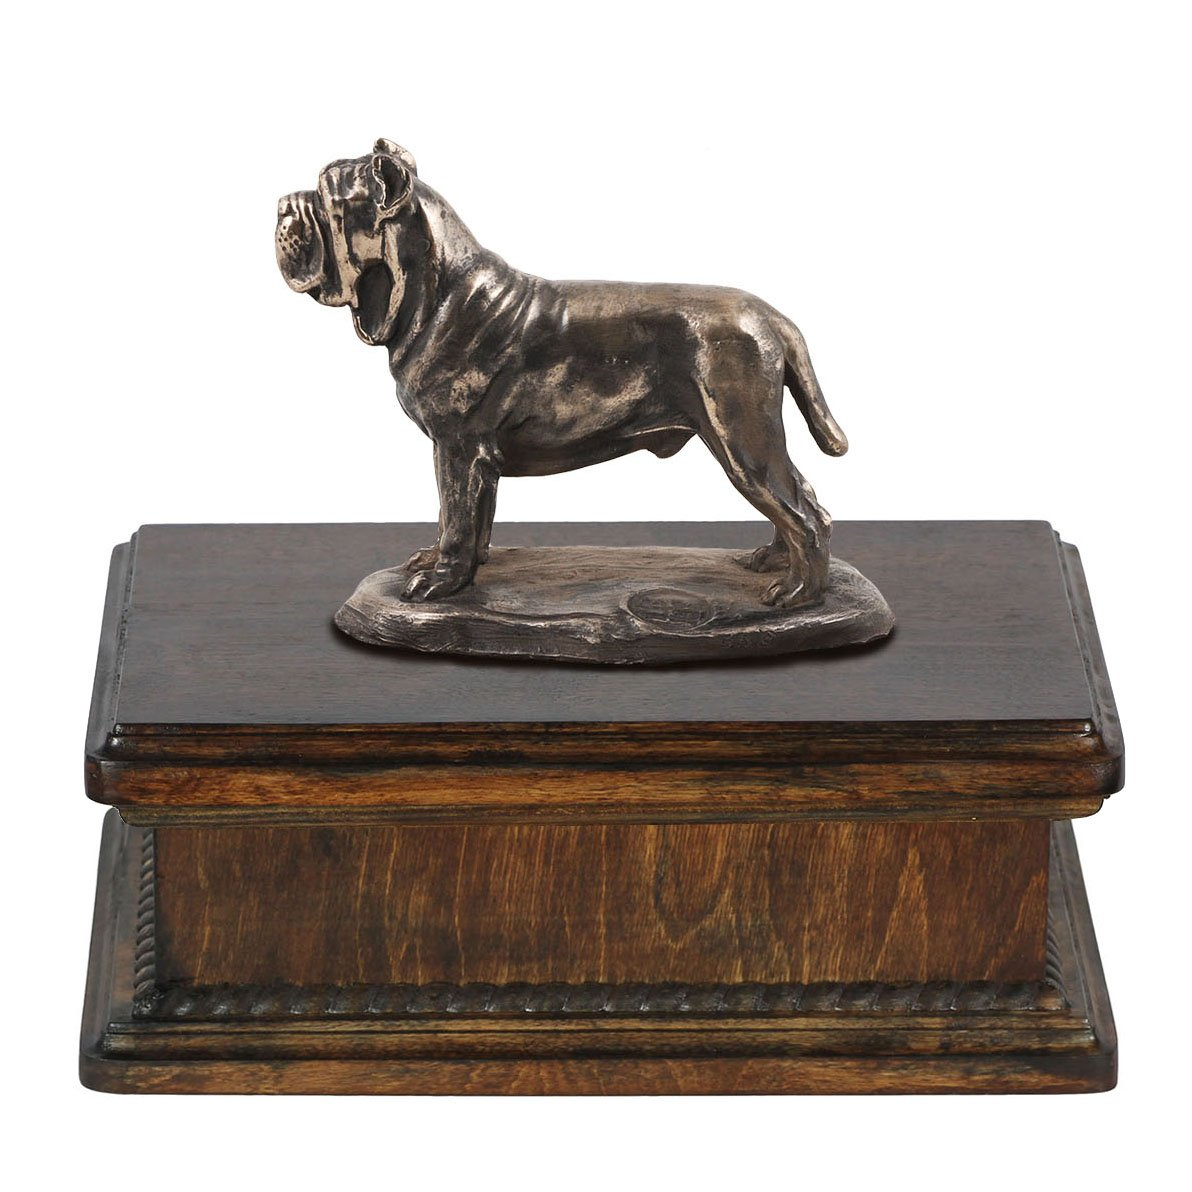 Mastino Neapolitan, memorial, urn for dog's ashes, with dog statue, exclusive, ArtDog